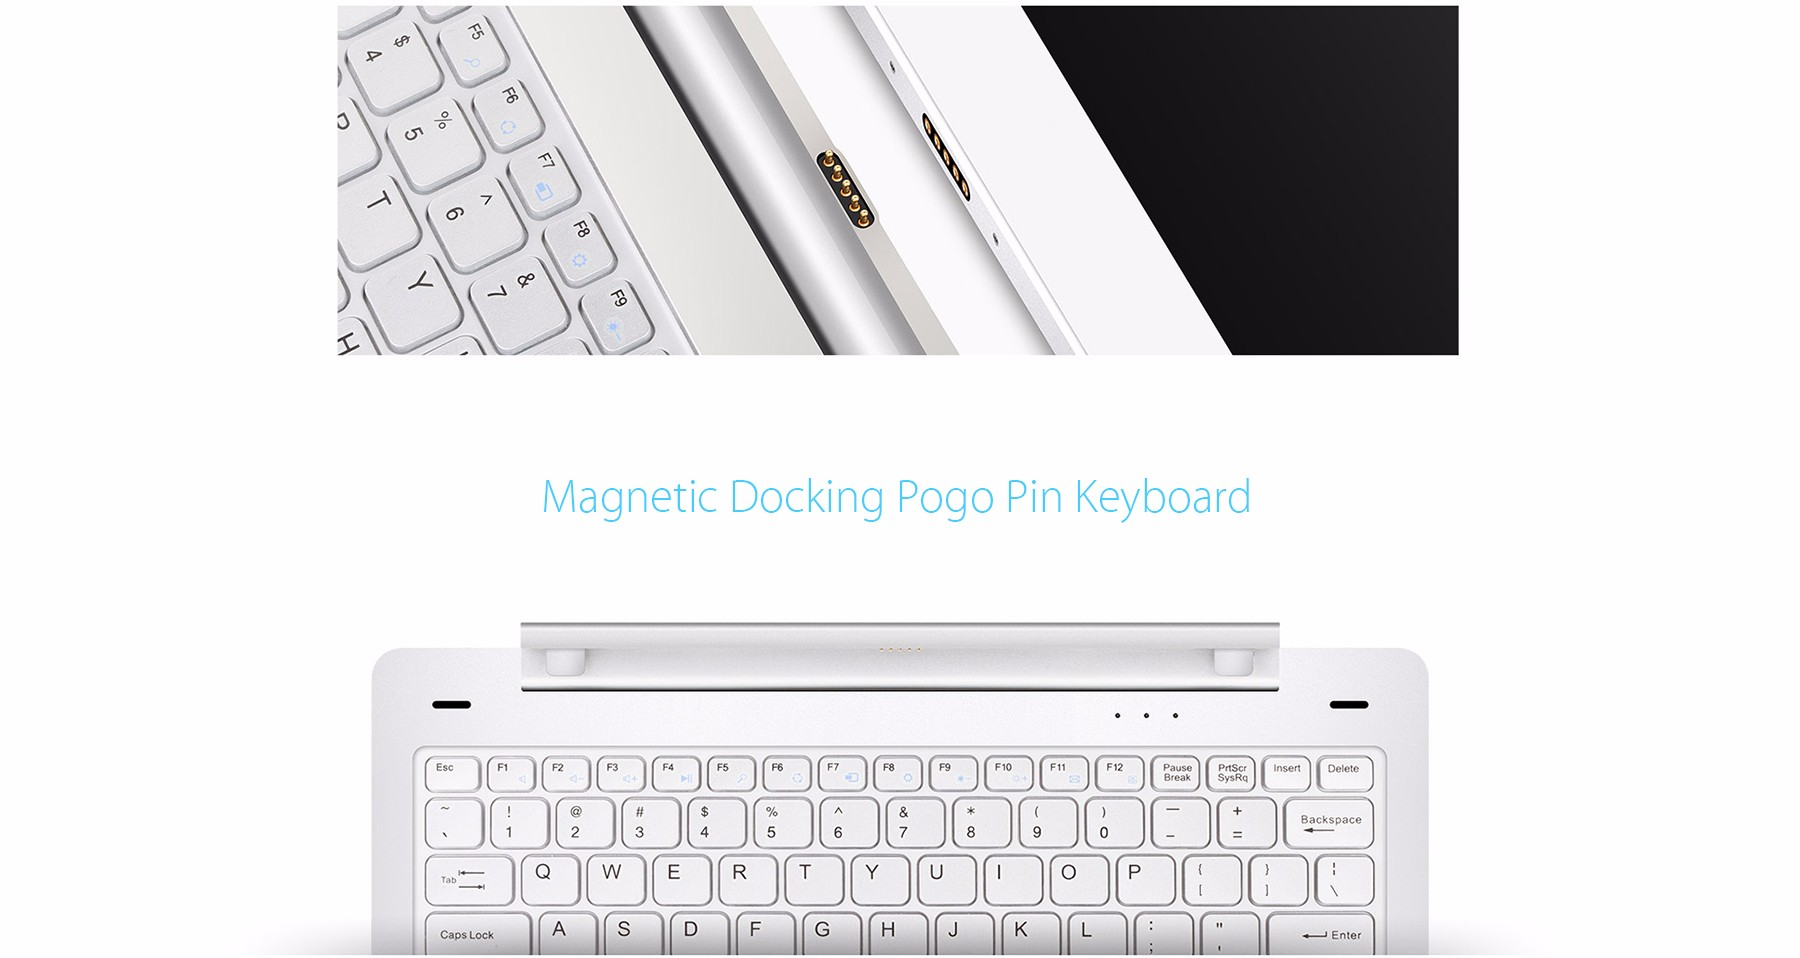 Original Teclast TBook 16 Pro Keyboard Multi Mode Rotary Shaft Magnetic Docking Pogo Pin Separable Design